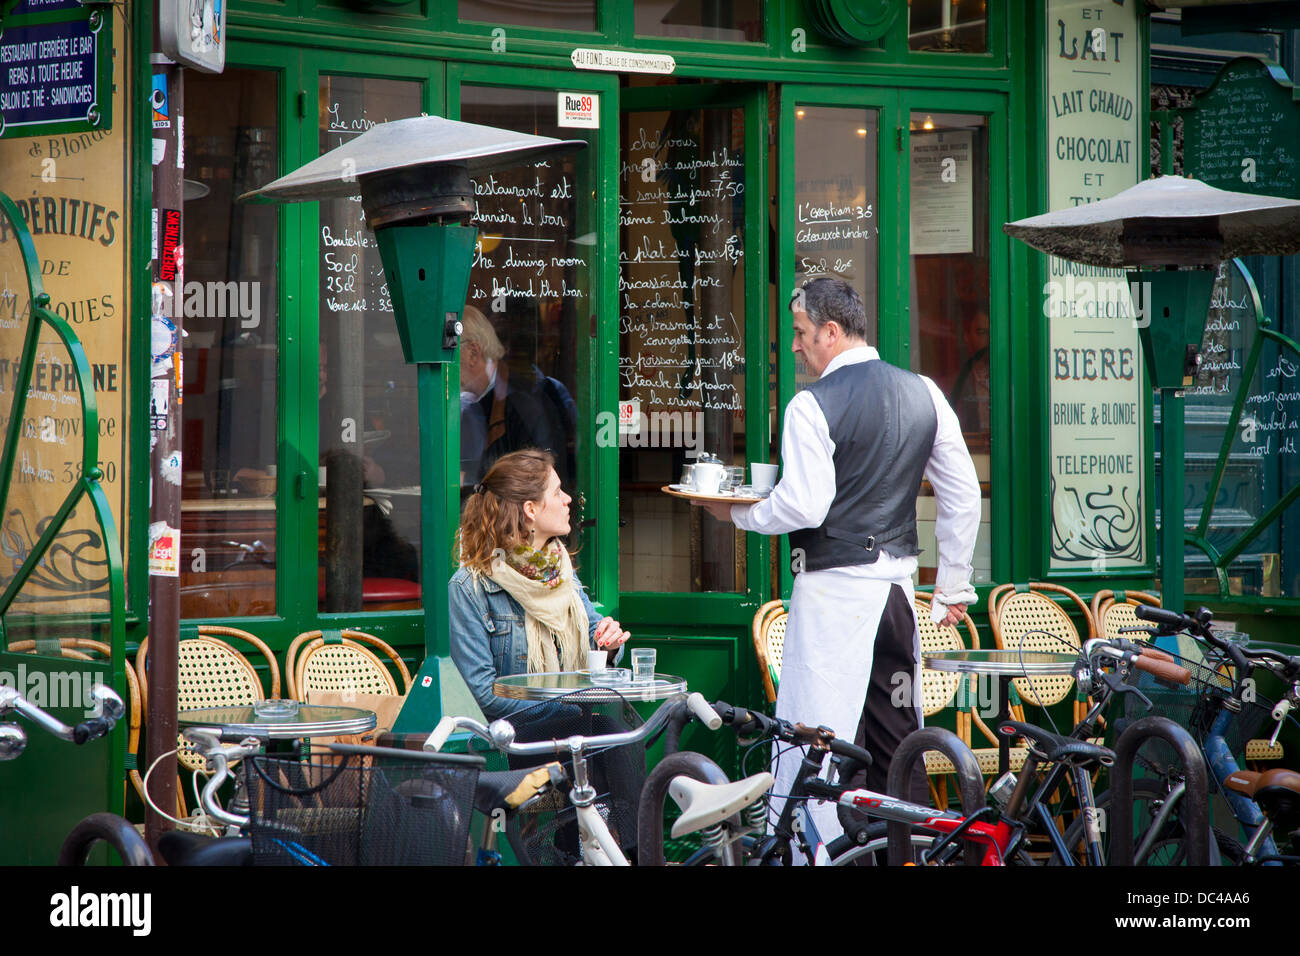 Waiter and customer at a cafe in les Marais, Paris France - Stock Image